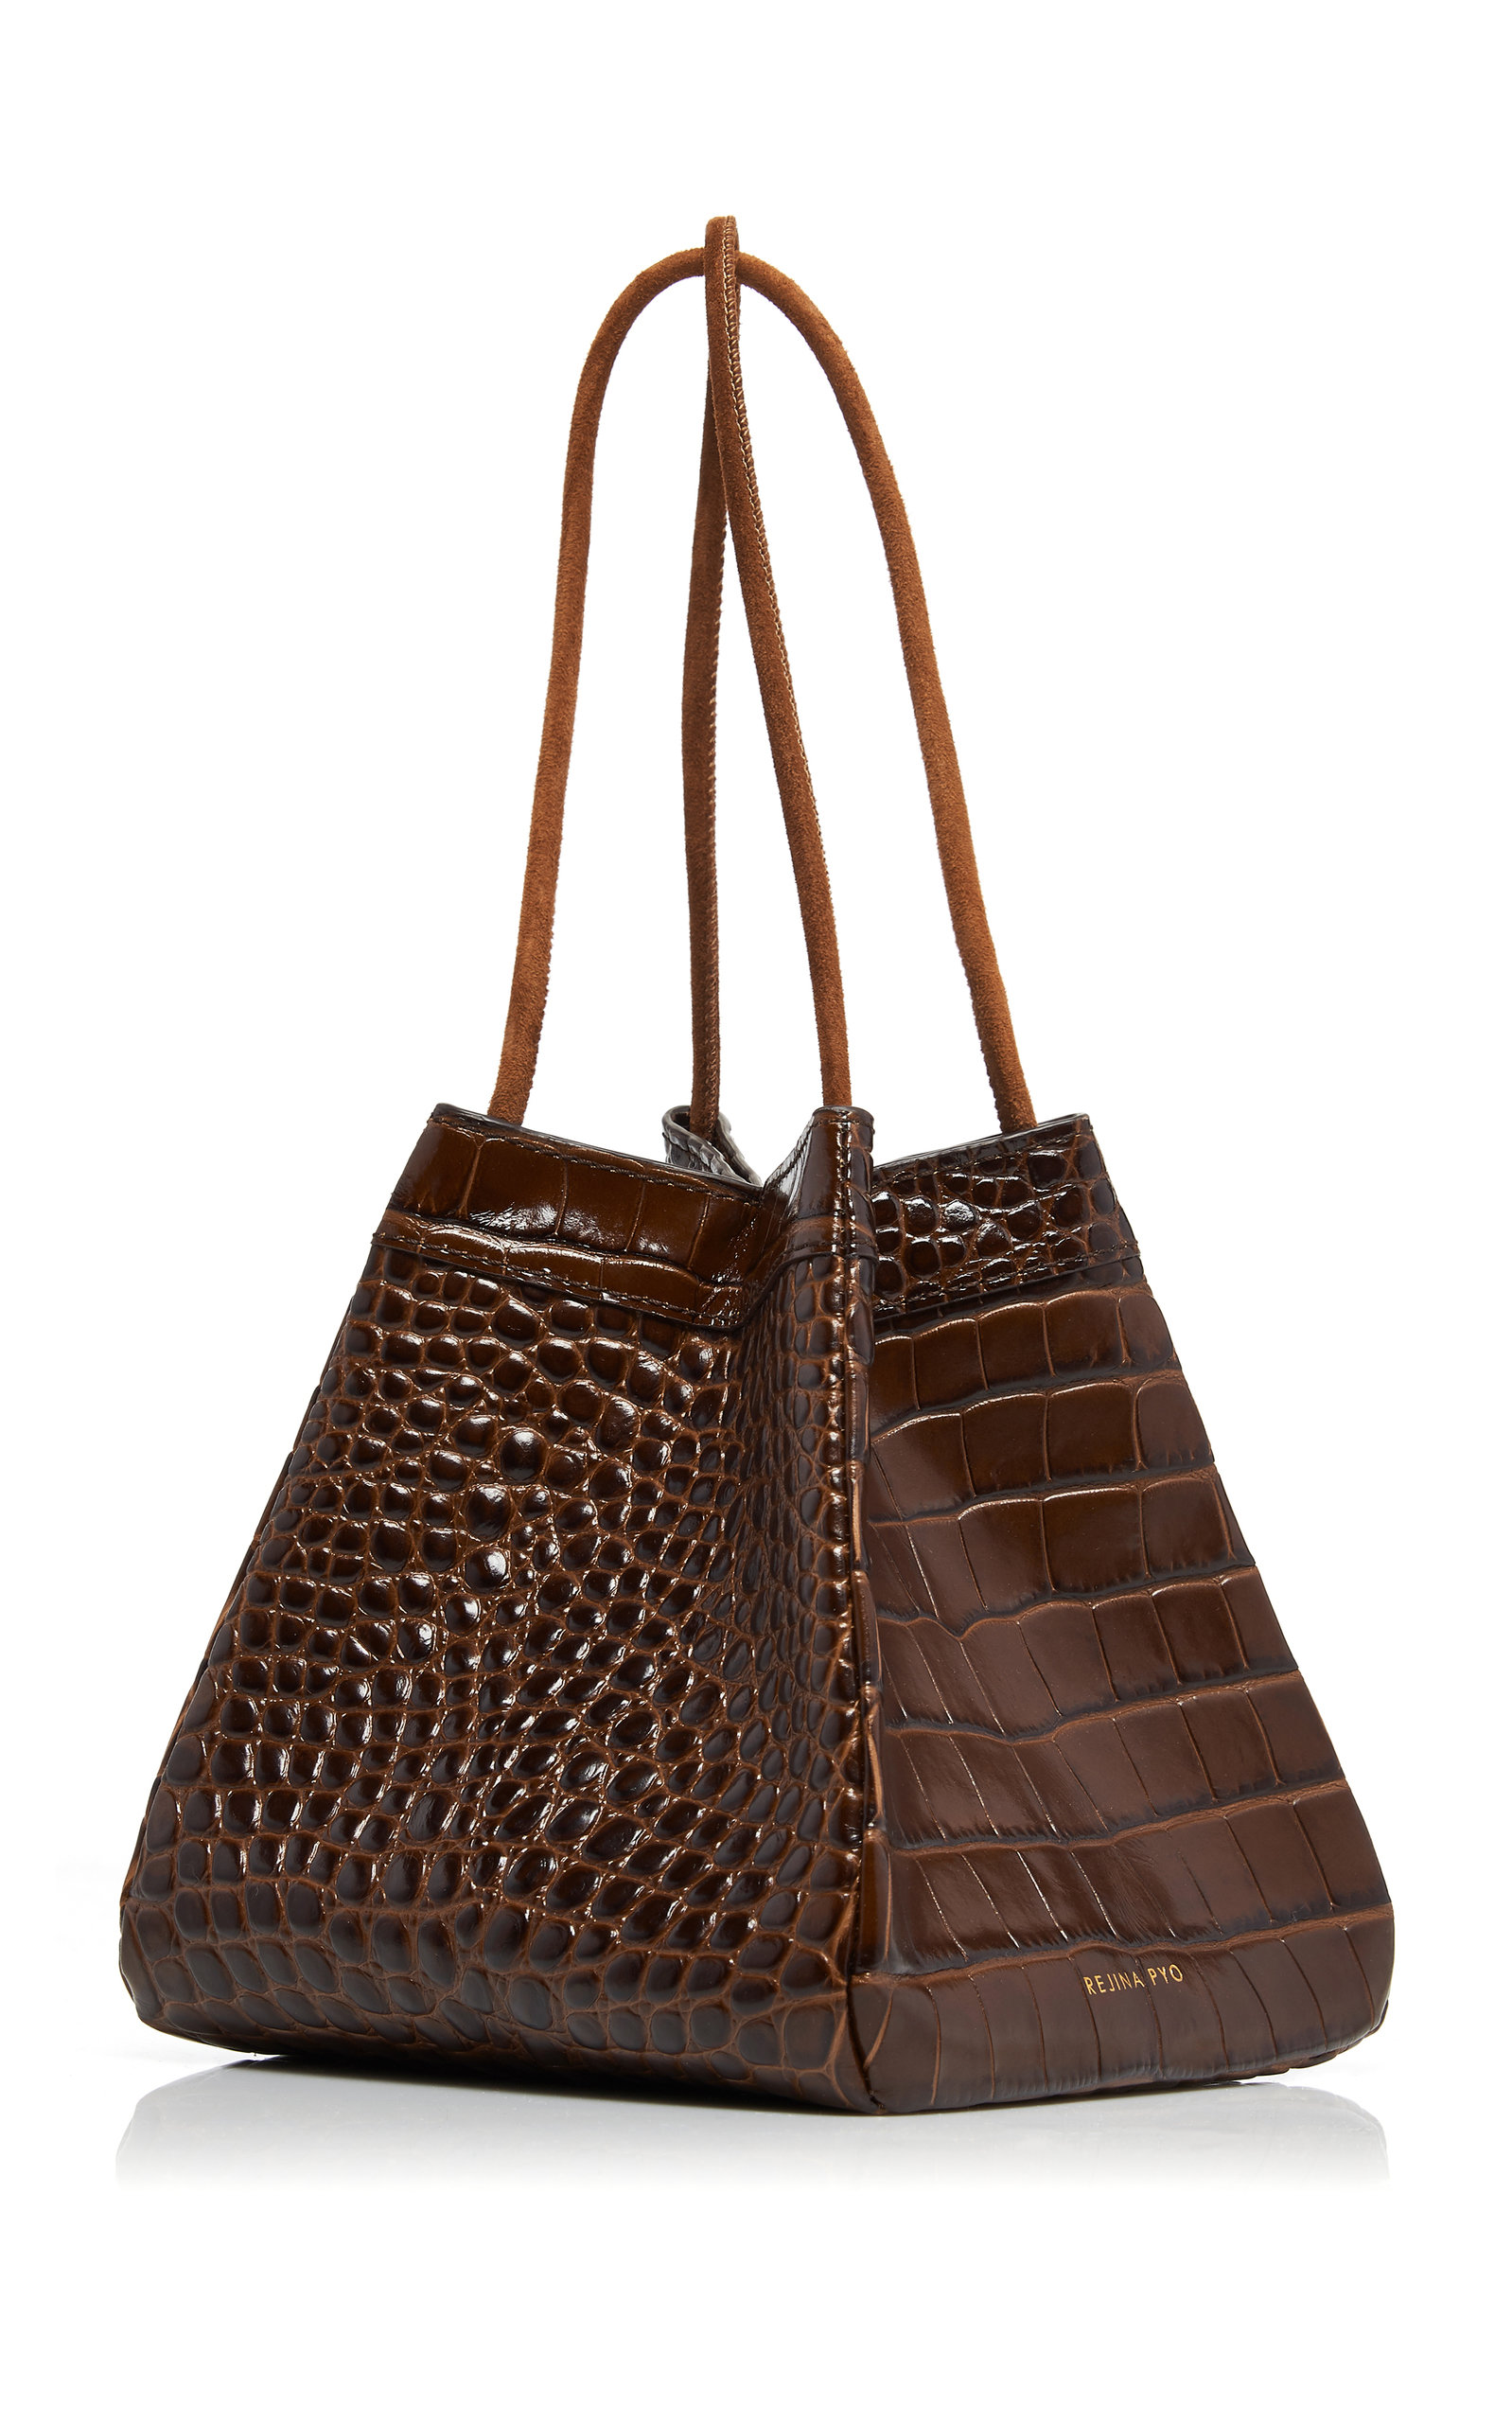 quality distinctive style look for Rita Croc Embossed Leather Bag